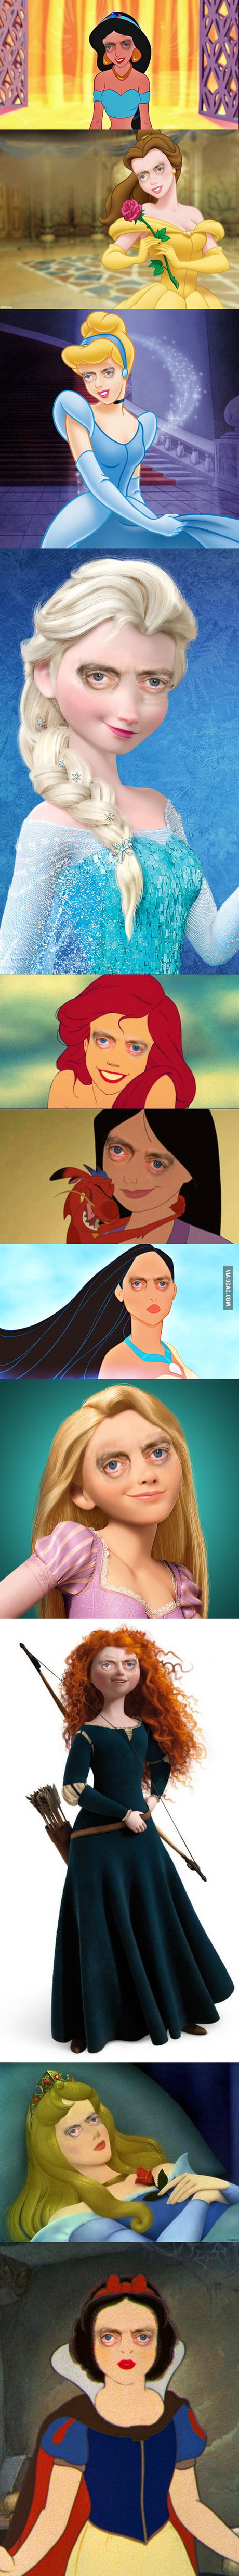 Disney Princesses with Steve Buscemi's Eyes